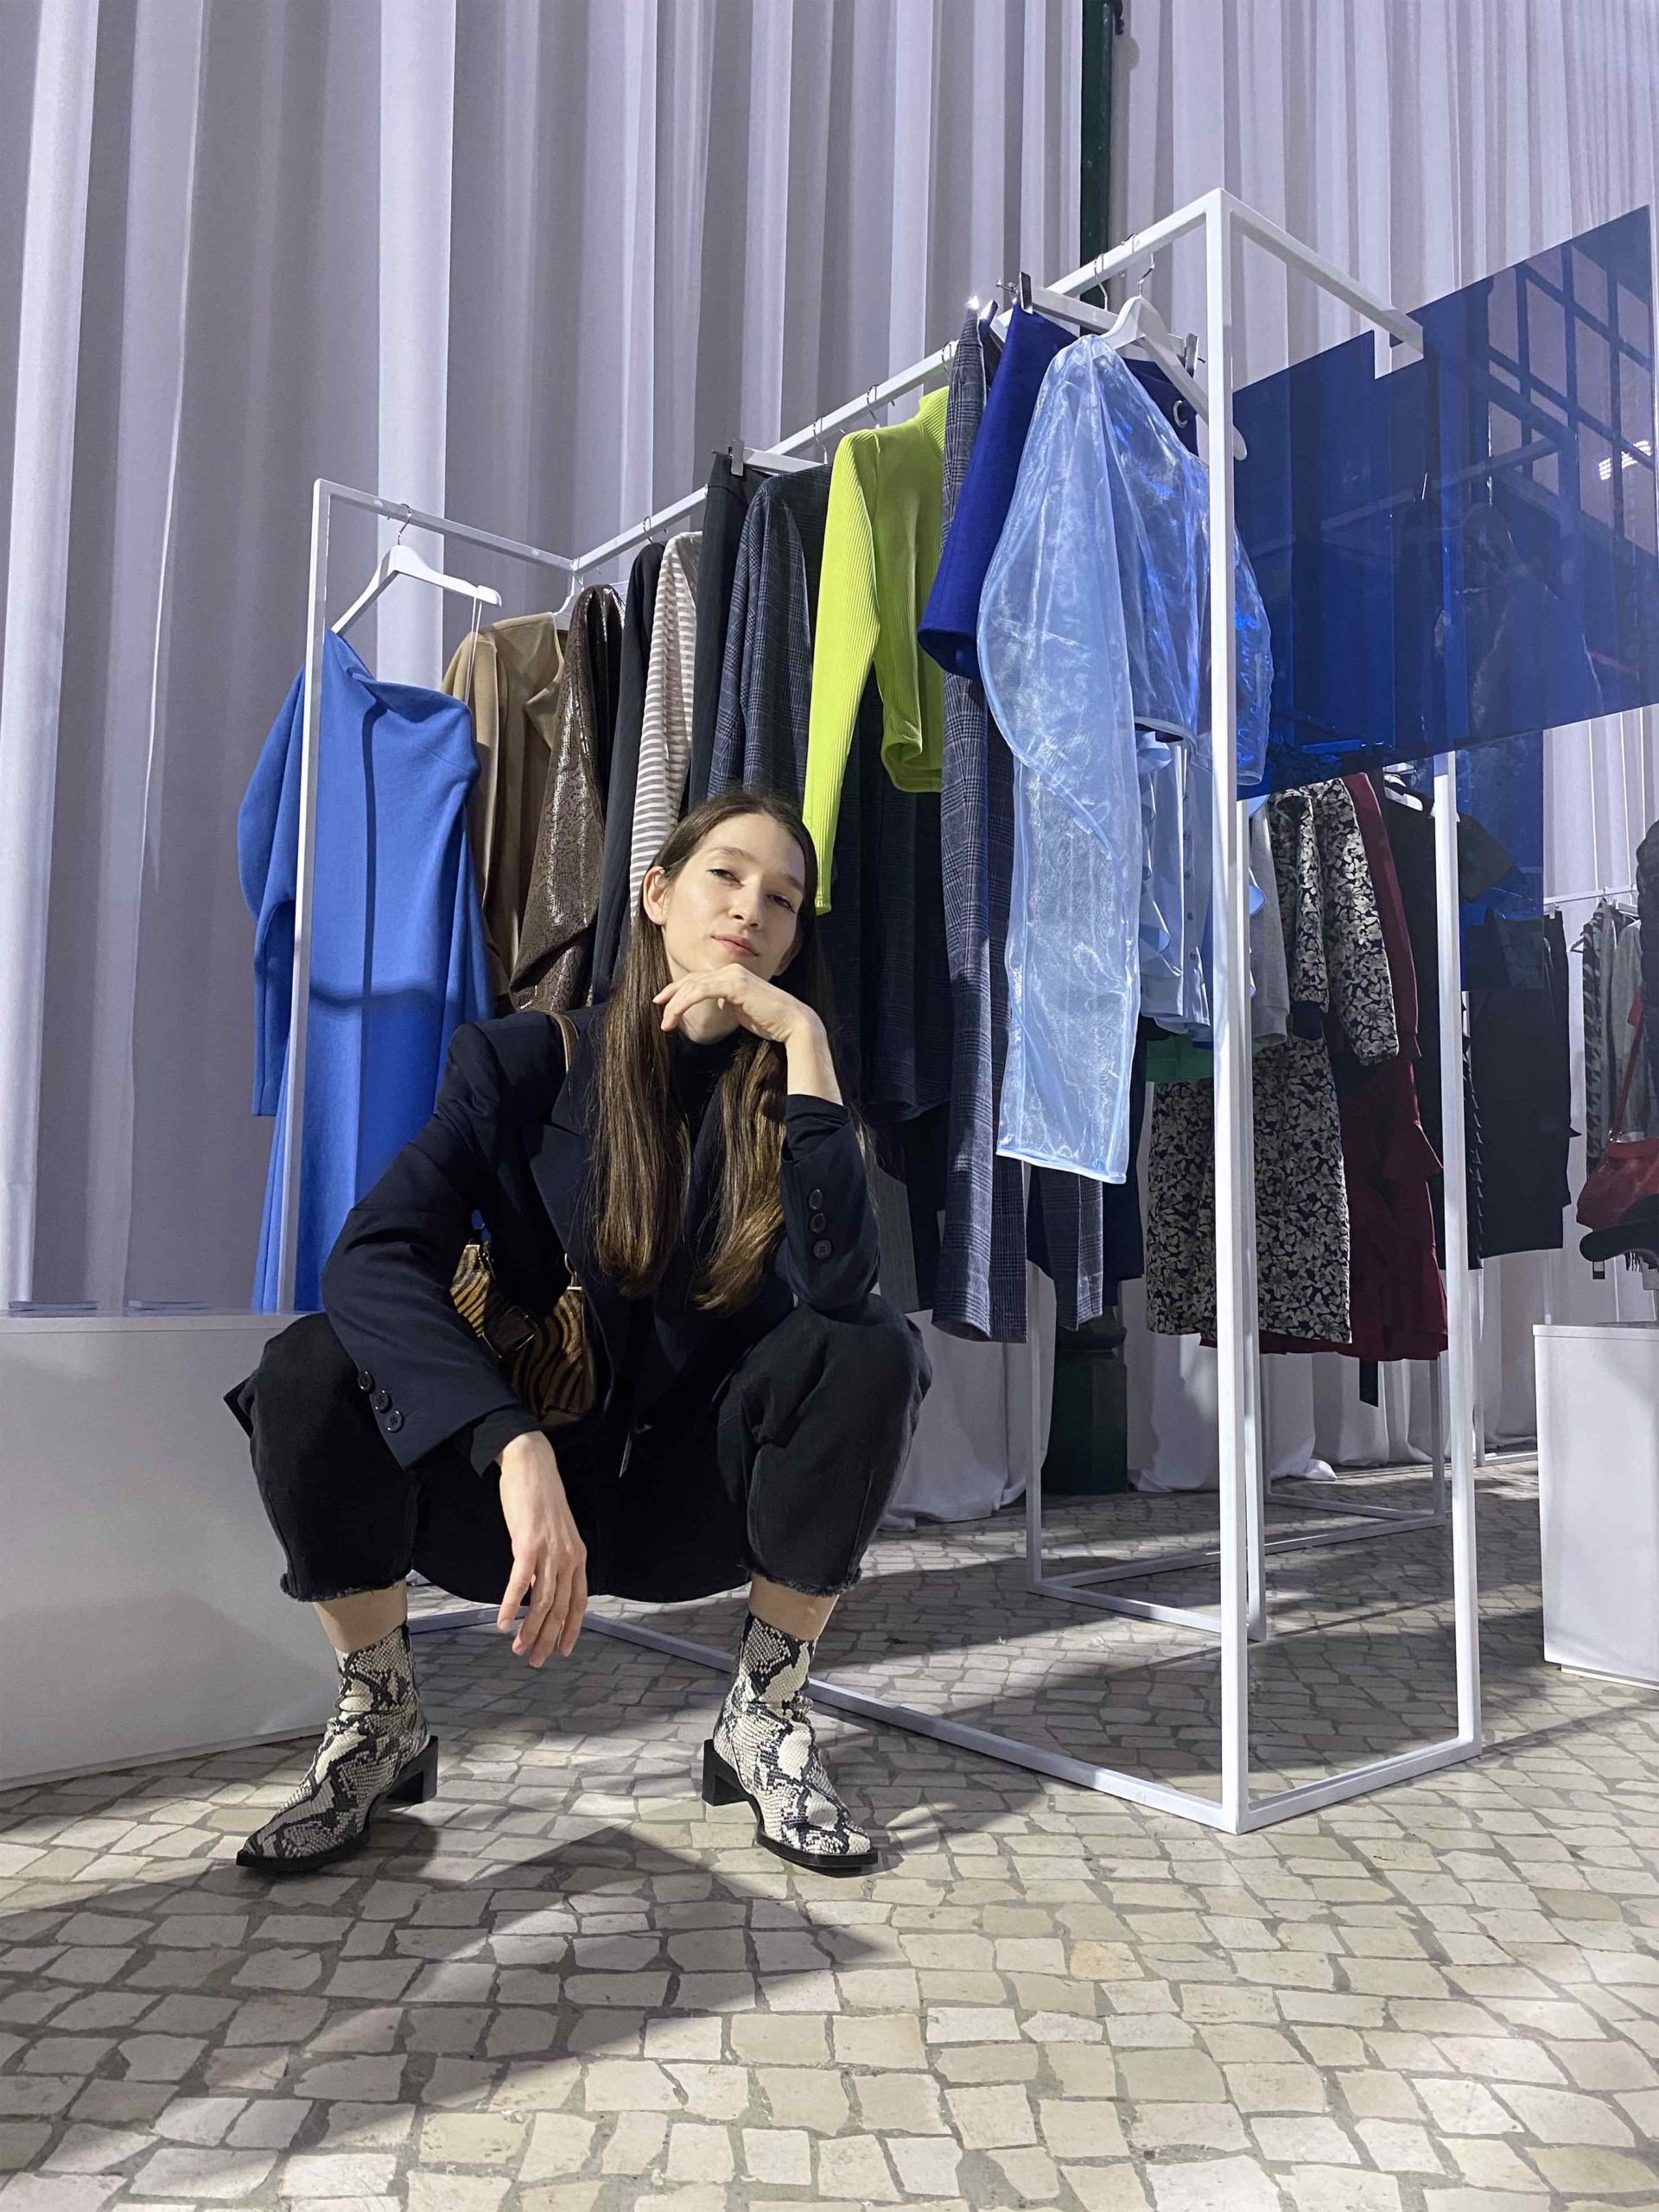 LIVING THE DREAM: SHOWCASING FASHION ON THE BIG STAGE